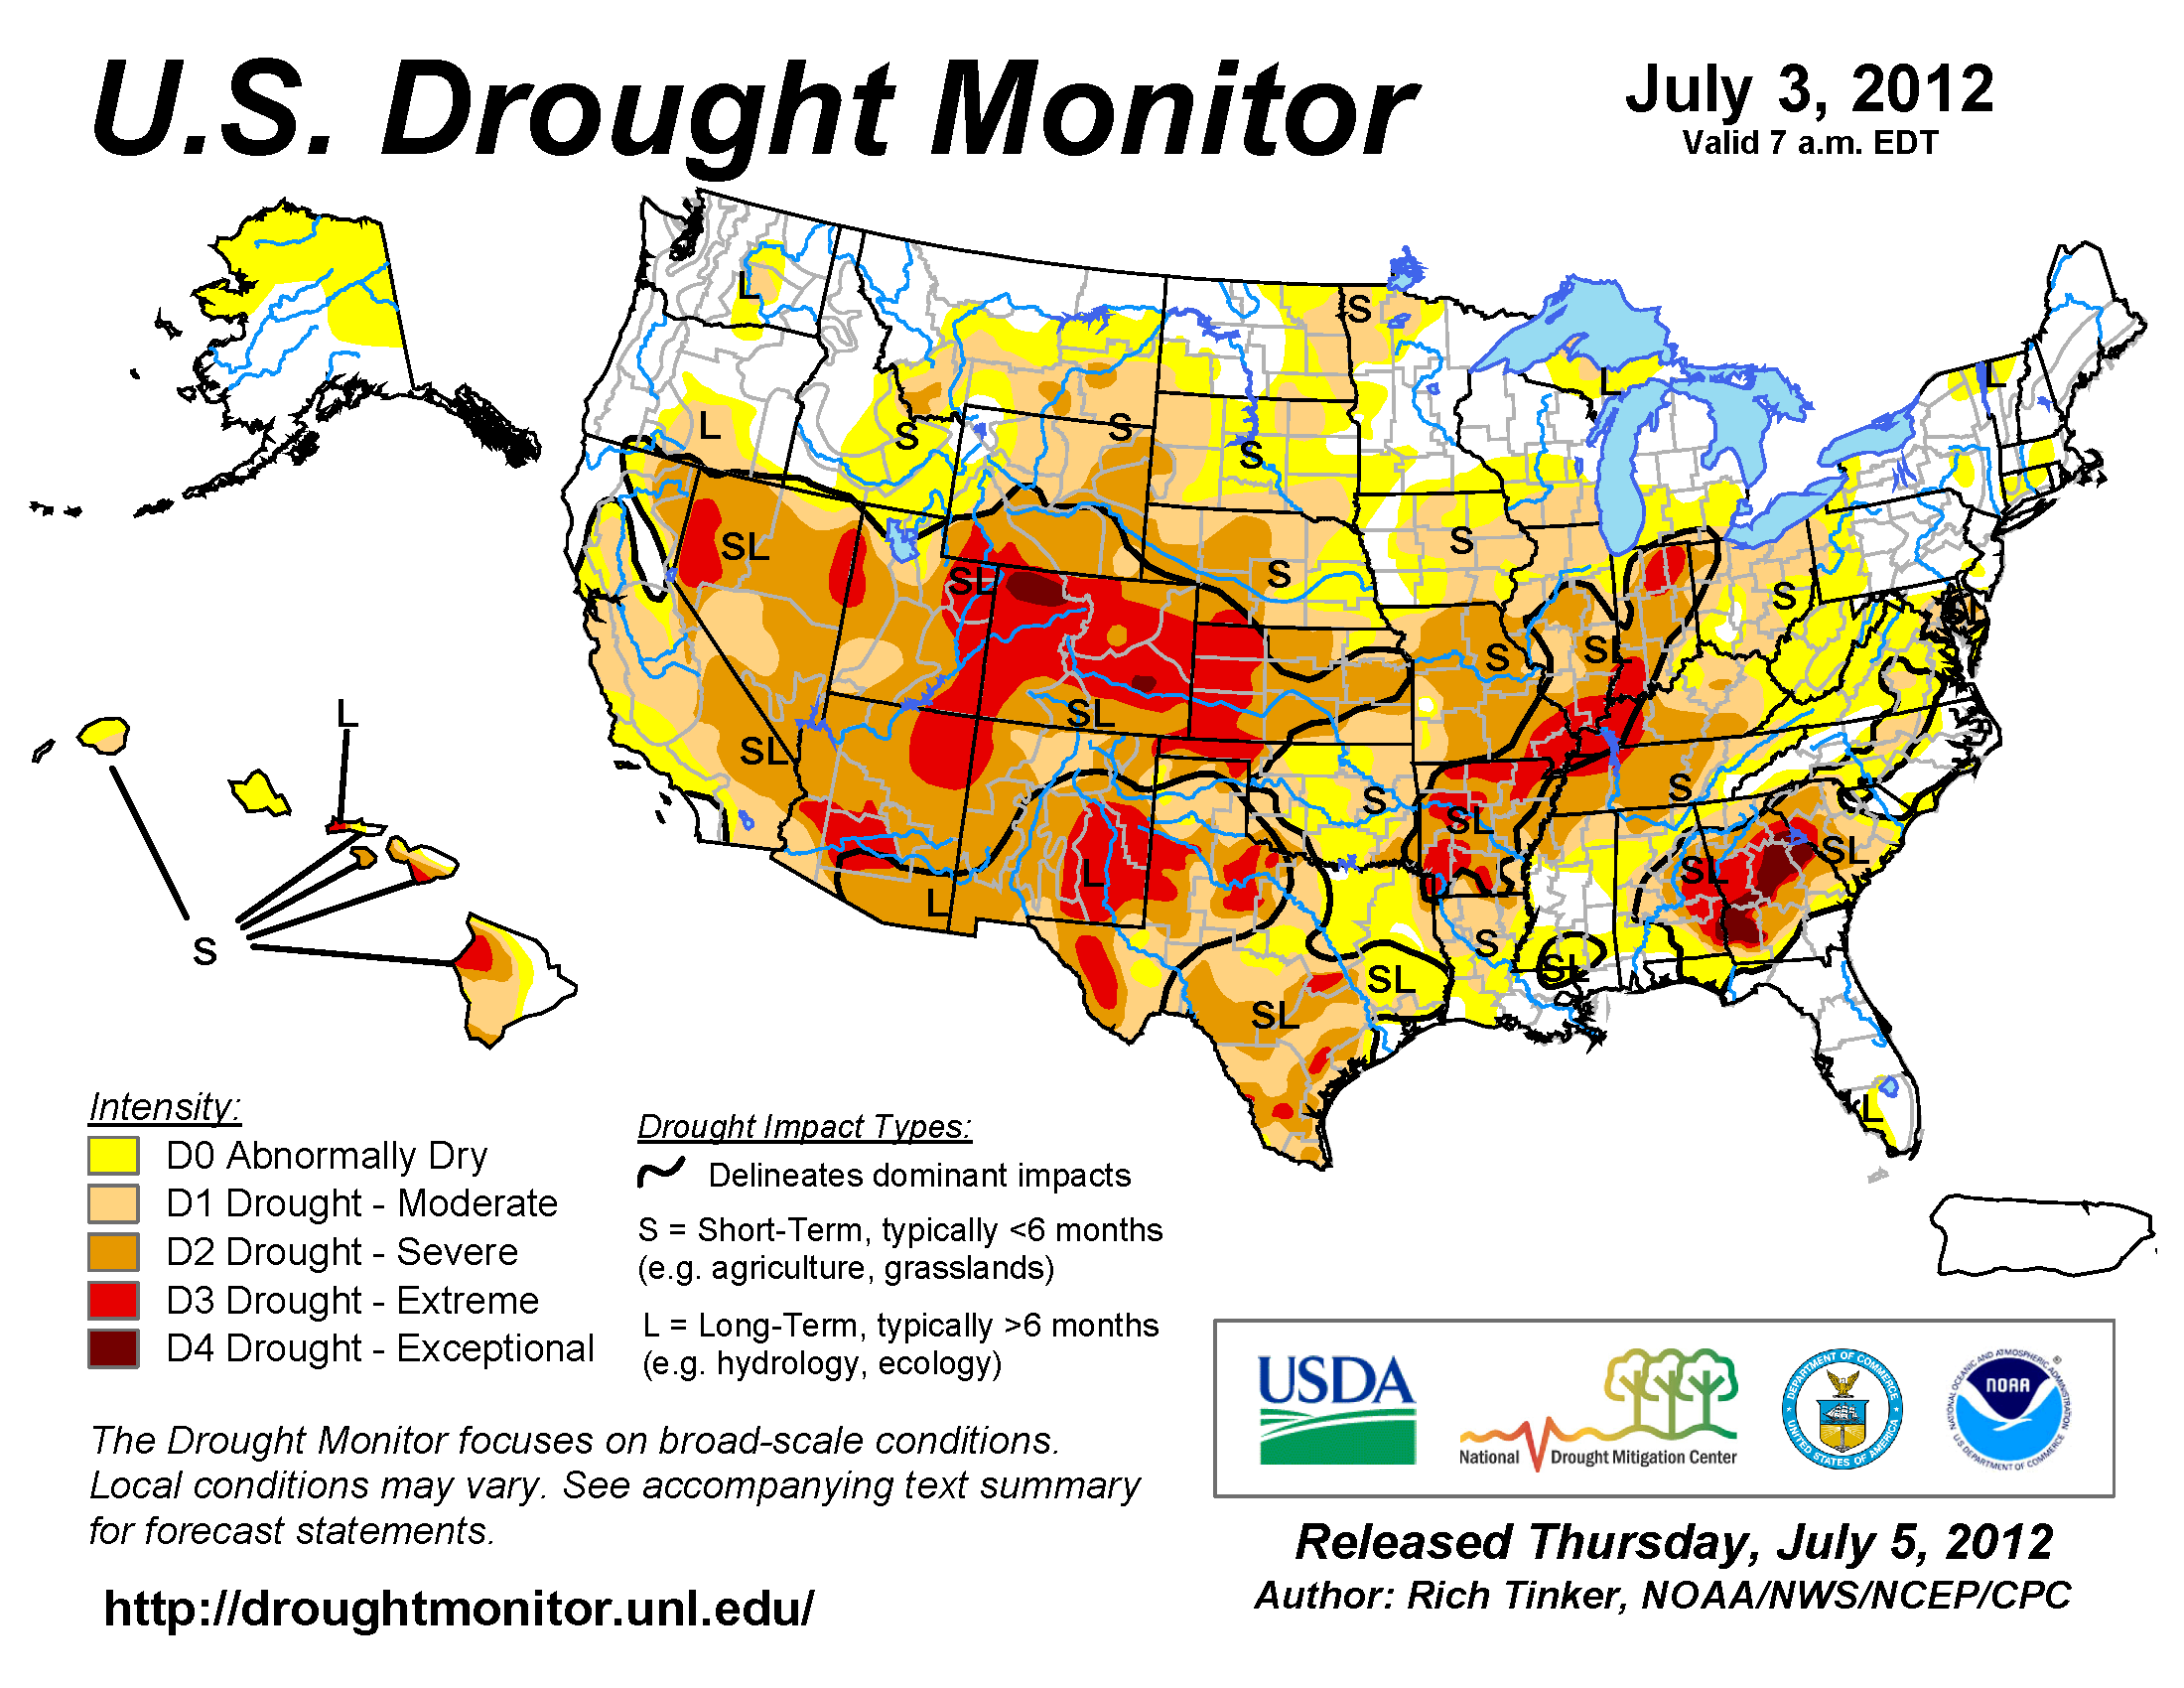 U.S. Drought Monitor map from 29 June 2012